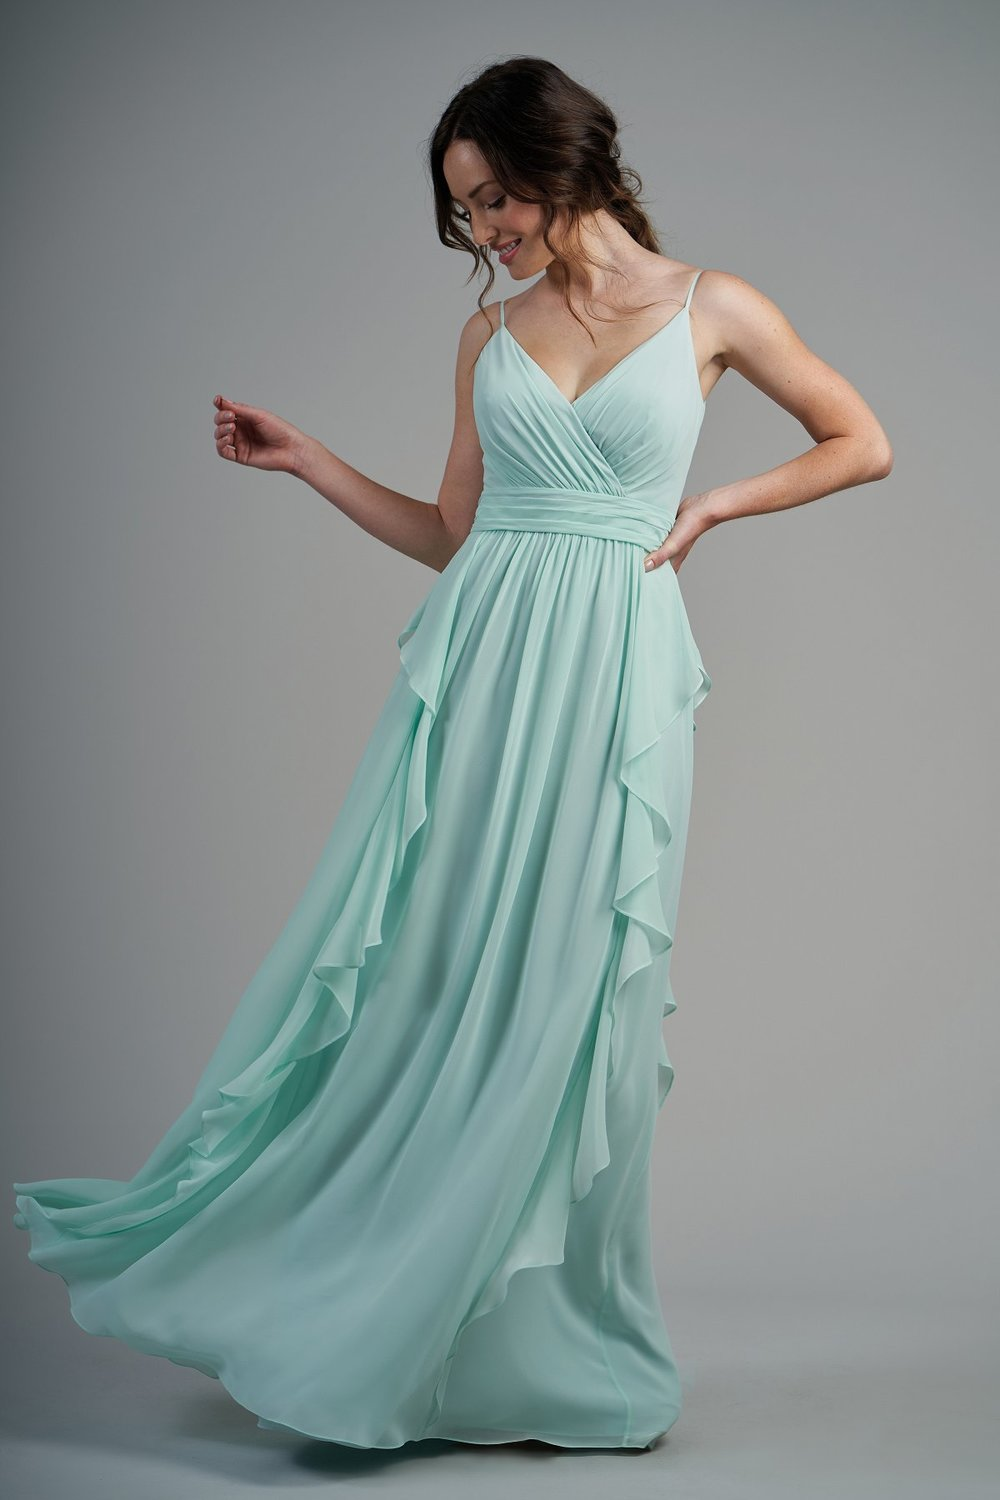 B213004 -  Pretty poly chiffon floor length bridesmaid dress with a flattering V-neckline and spaghetti straps. Beautiful detailed gathers throughout the dress and lovely ruffles on the flowy skirt.    Available in 60 colors